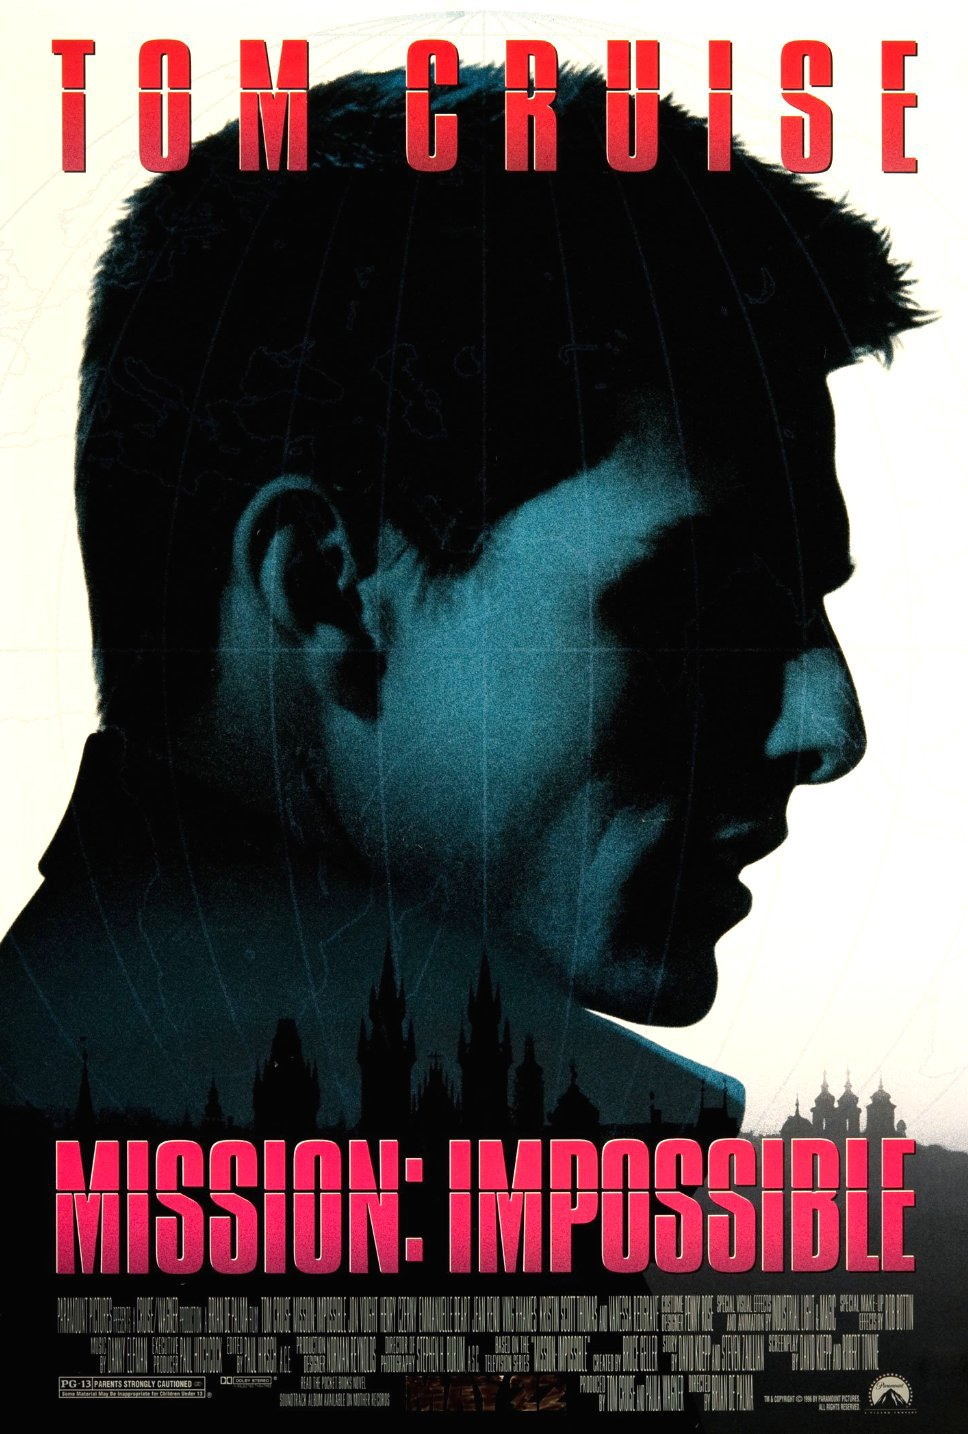 Mission Impossible 1 1996 Hindi Dubbed